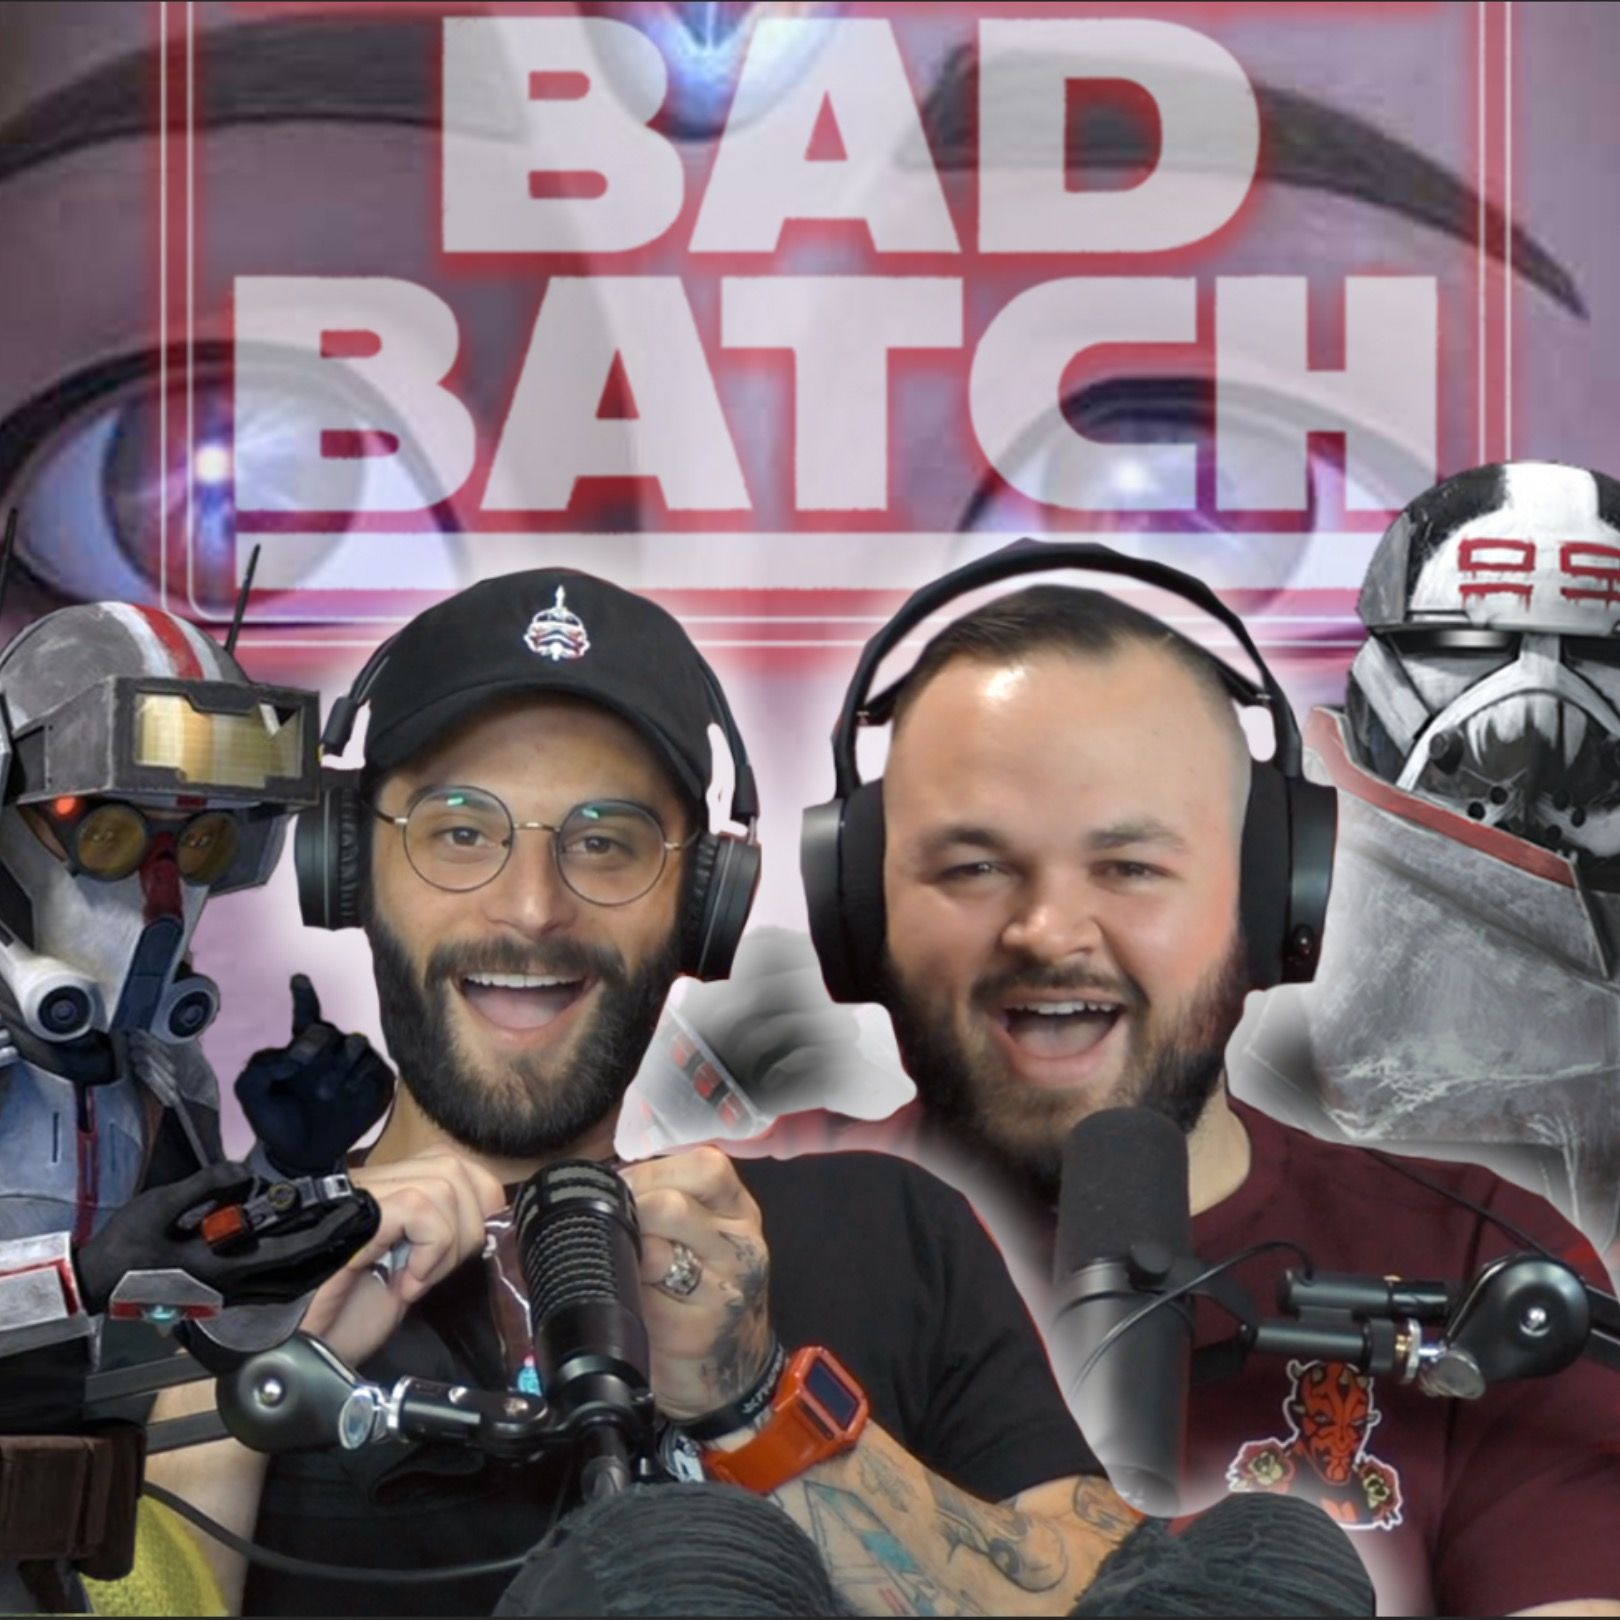 THE BOYS ARE BACK WITH A BAD BATCH REVIEW!!!